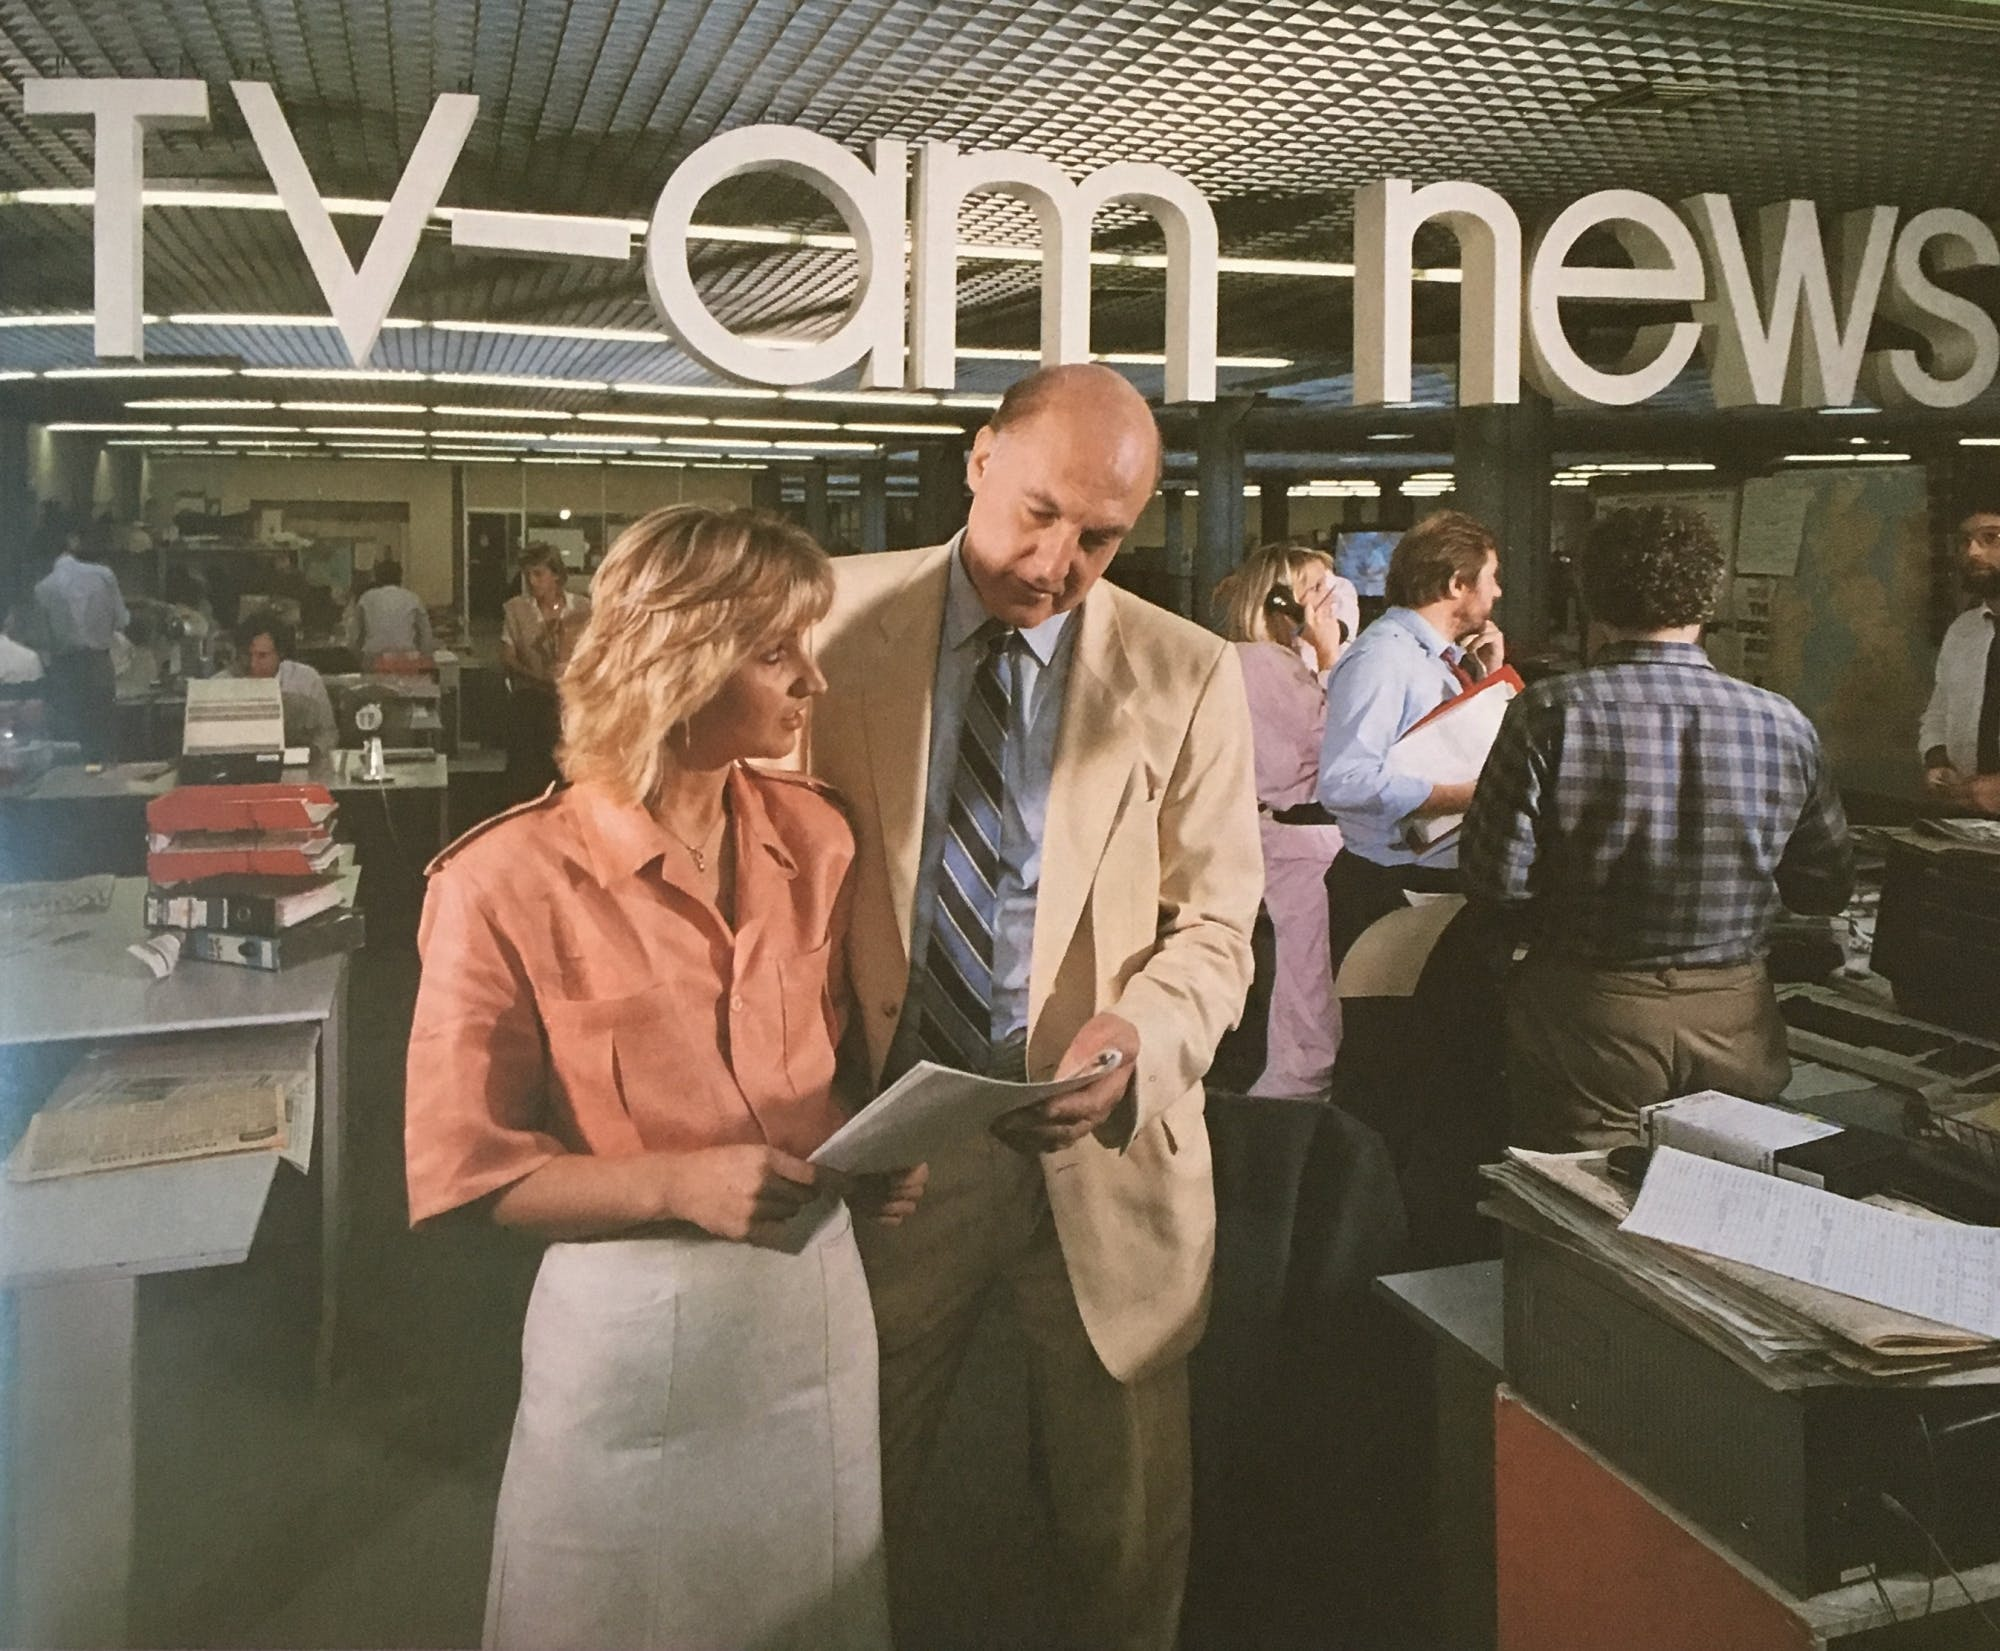 Jayne Irving & Gordon Honeycombe in the TV-am newsroom